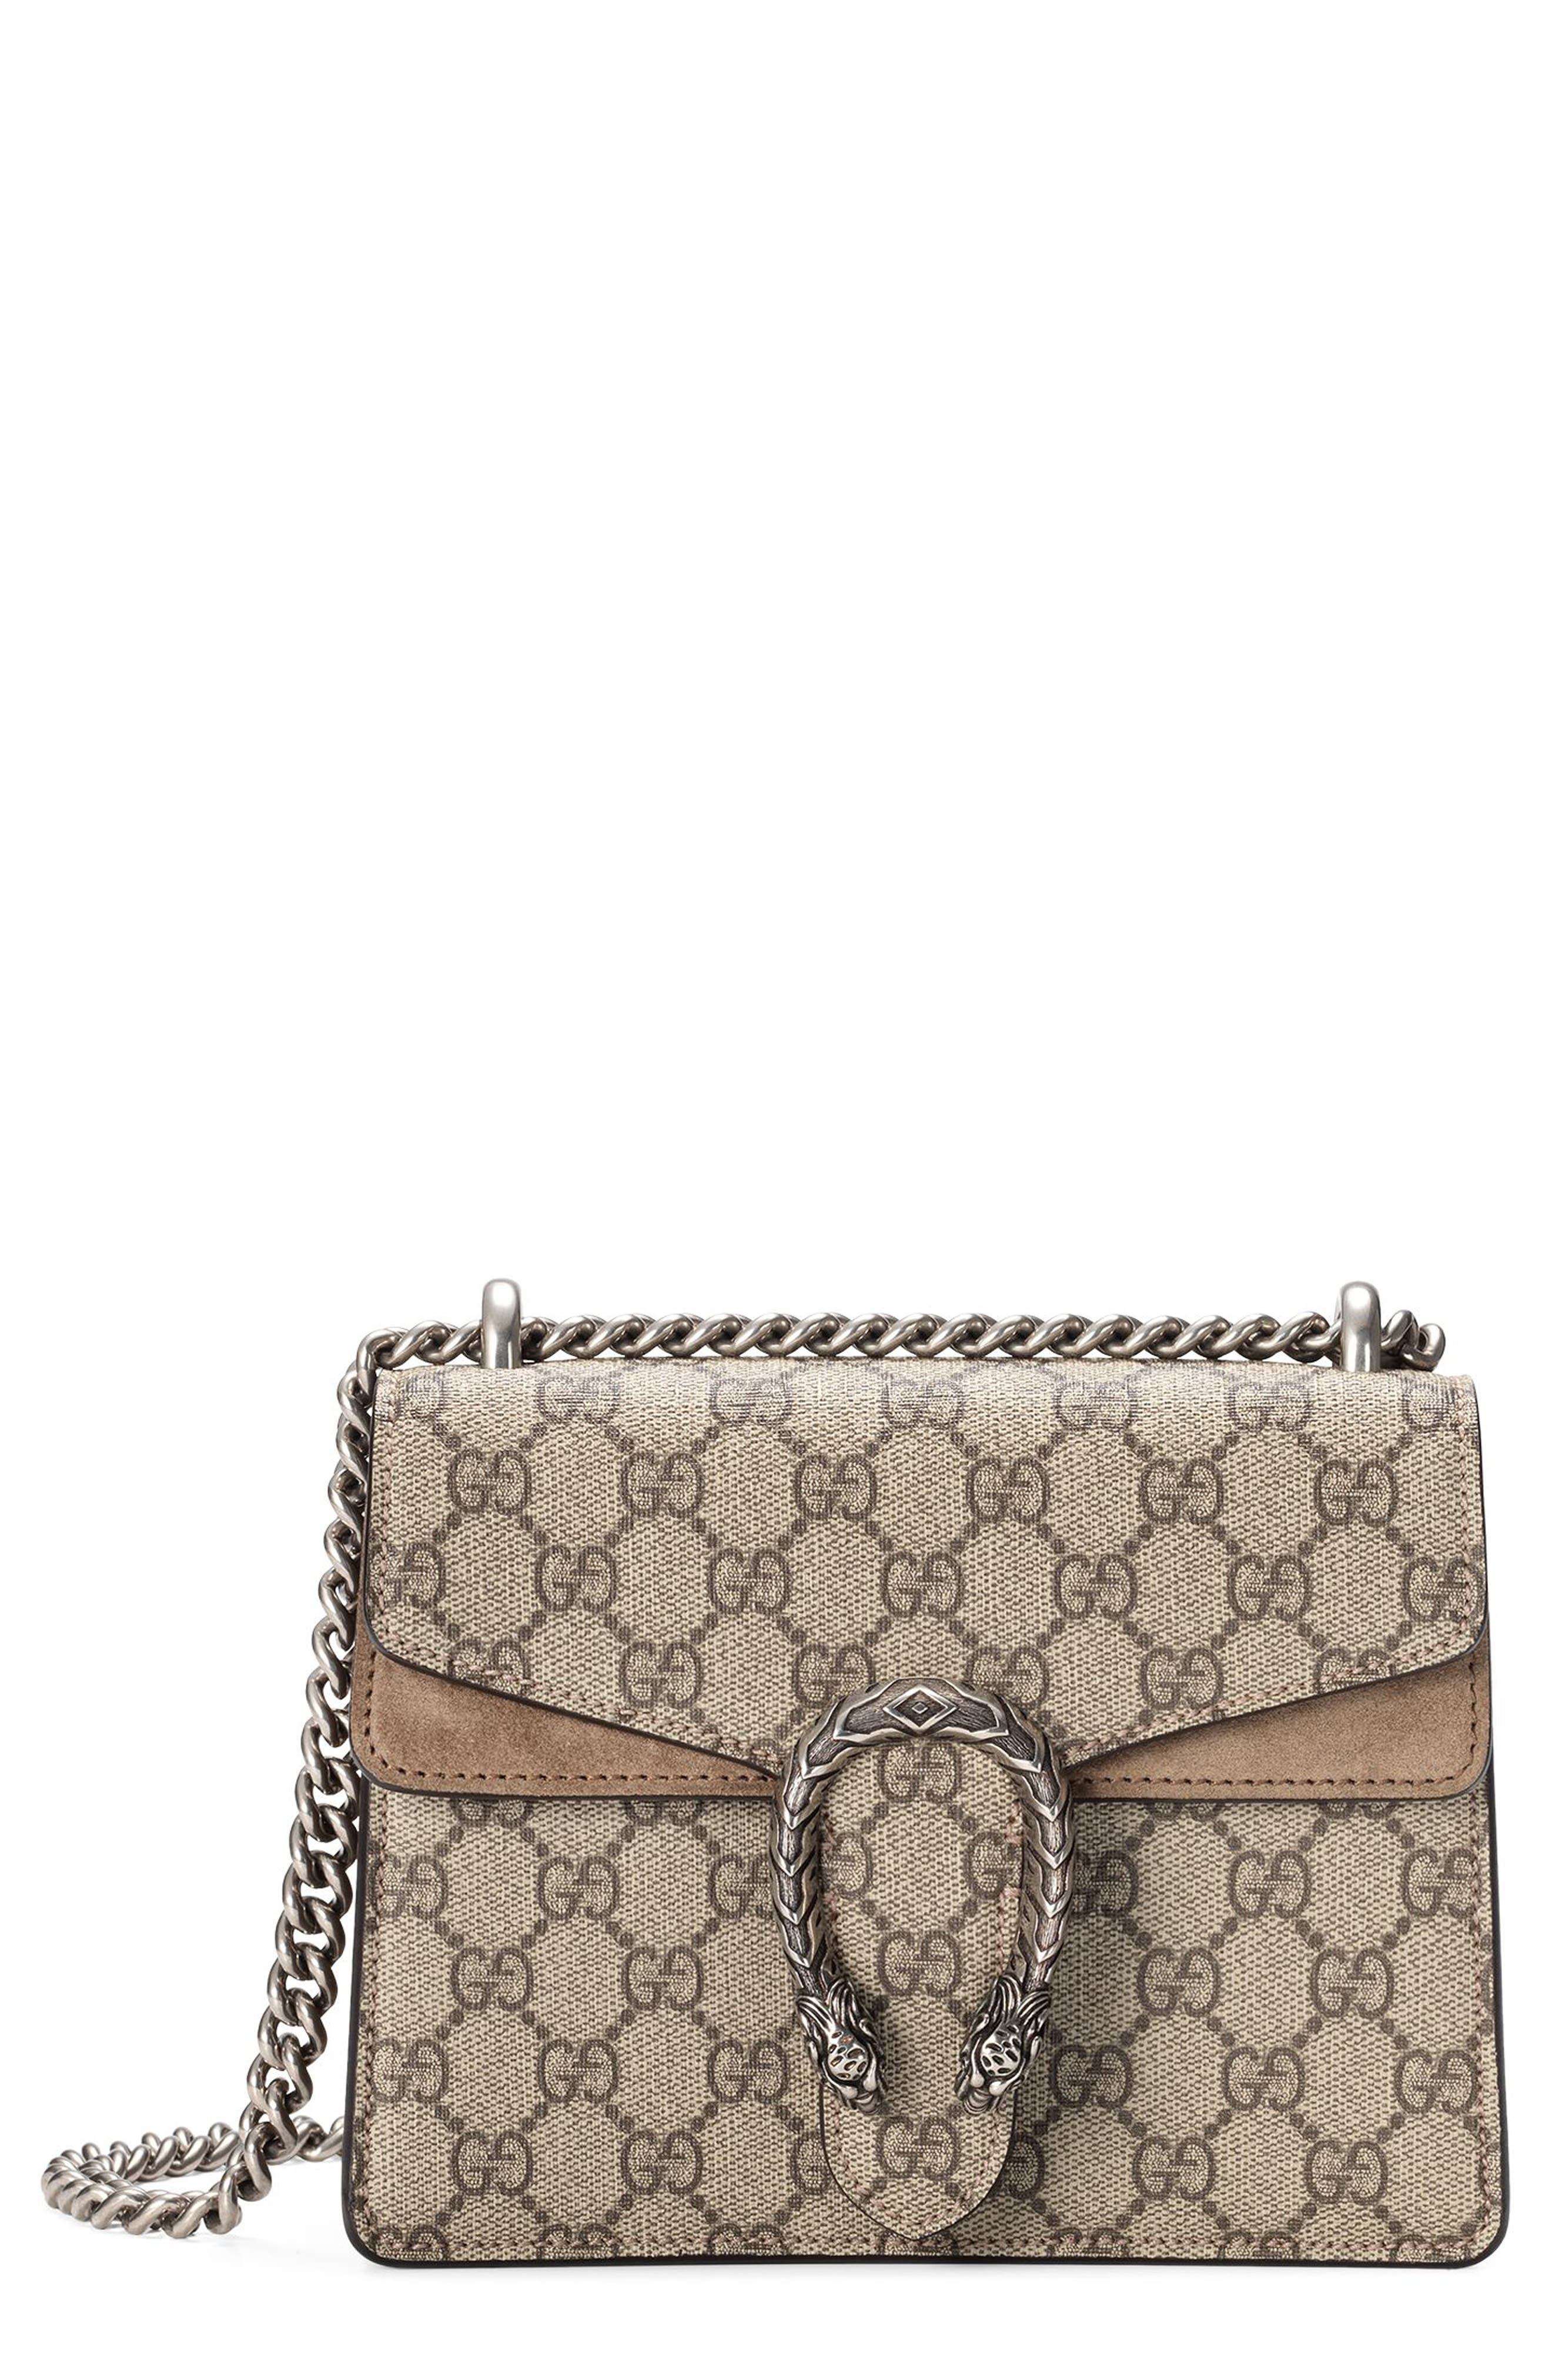 GUCCI Mini Dionysus GG Supreme Shoulder Bag, Main, color, BEIGE EBONY/ TAUPE